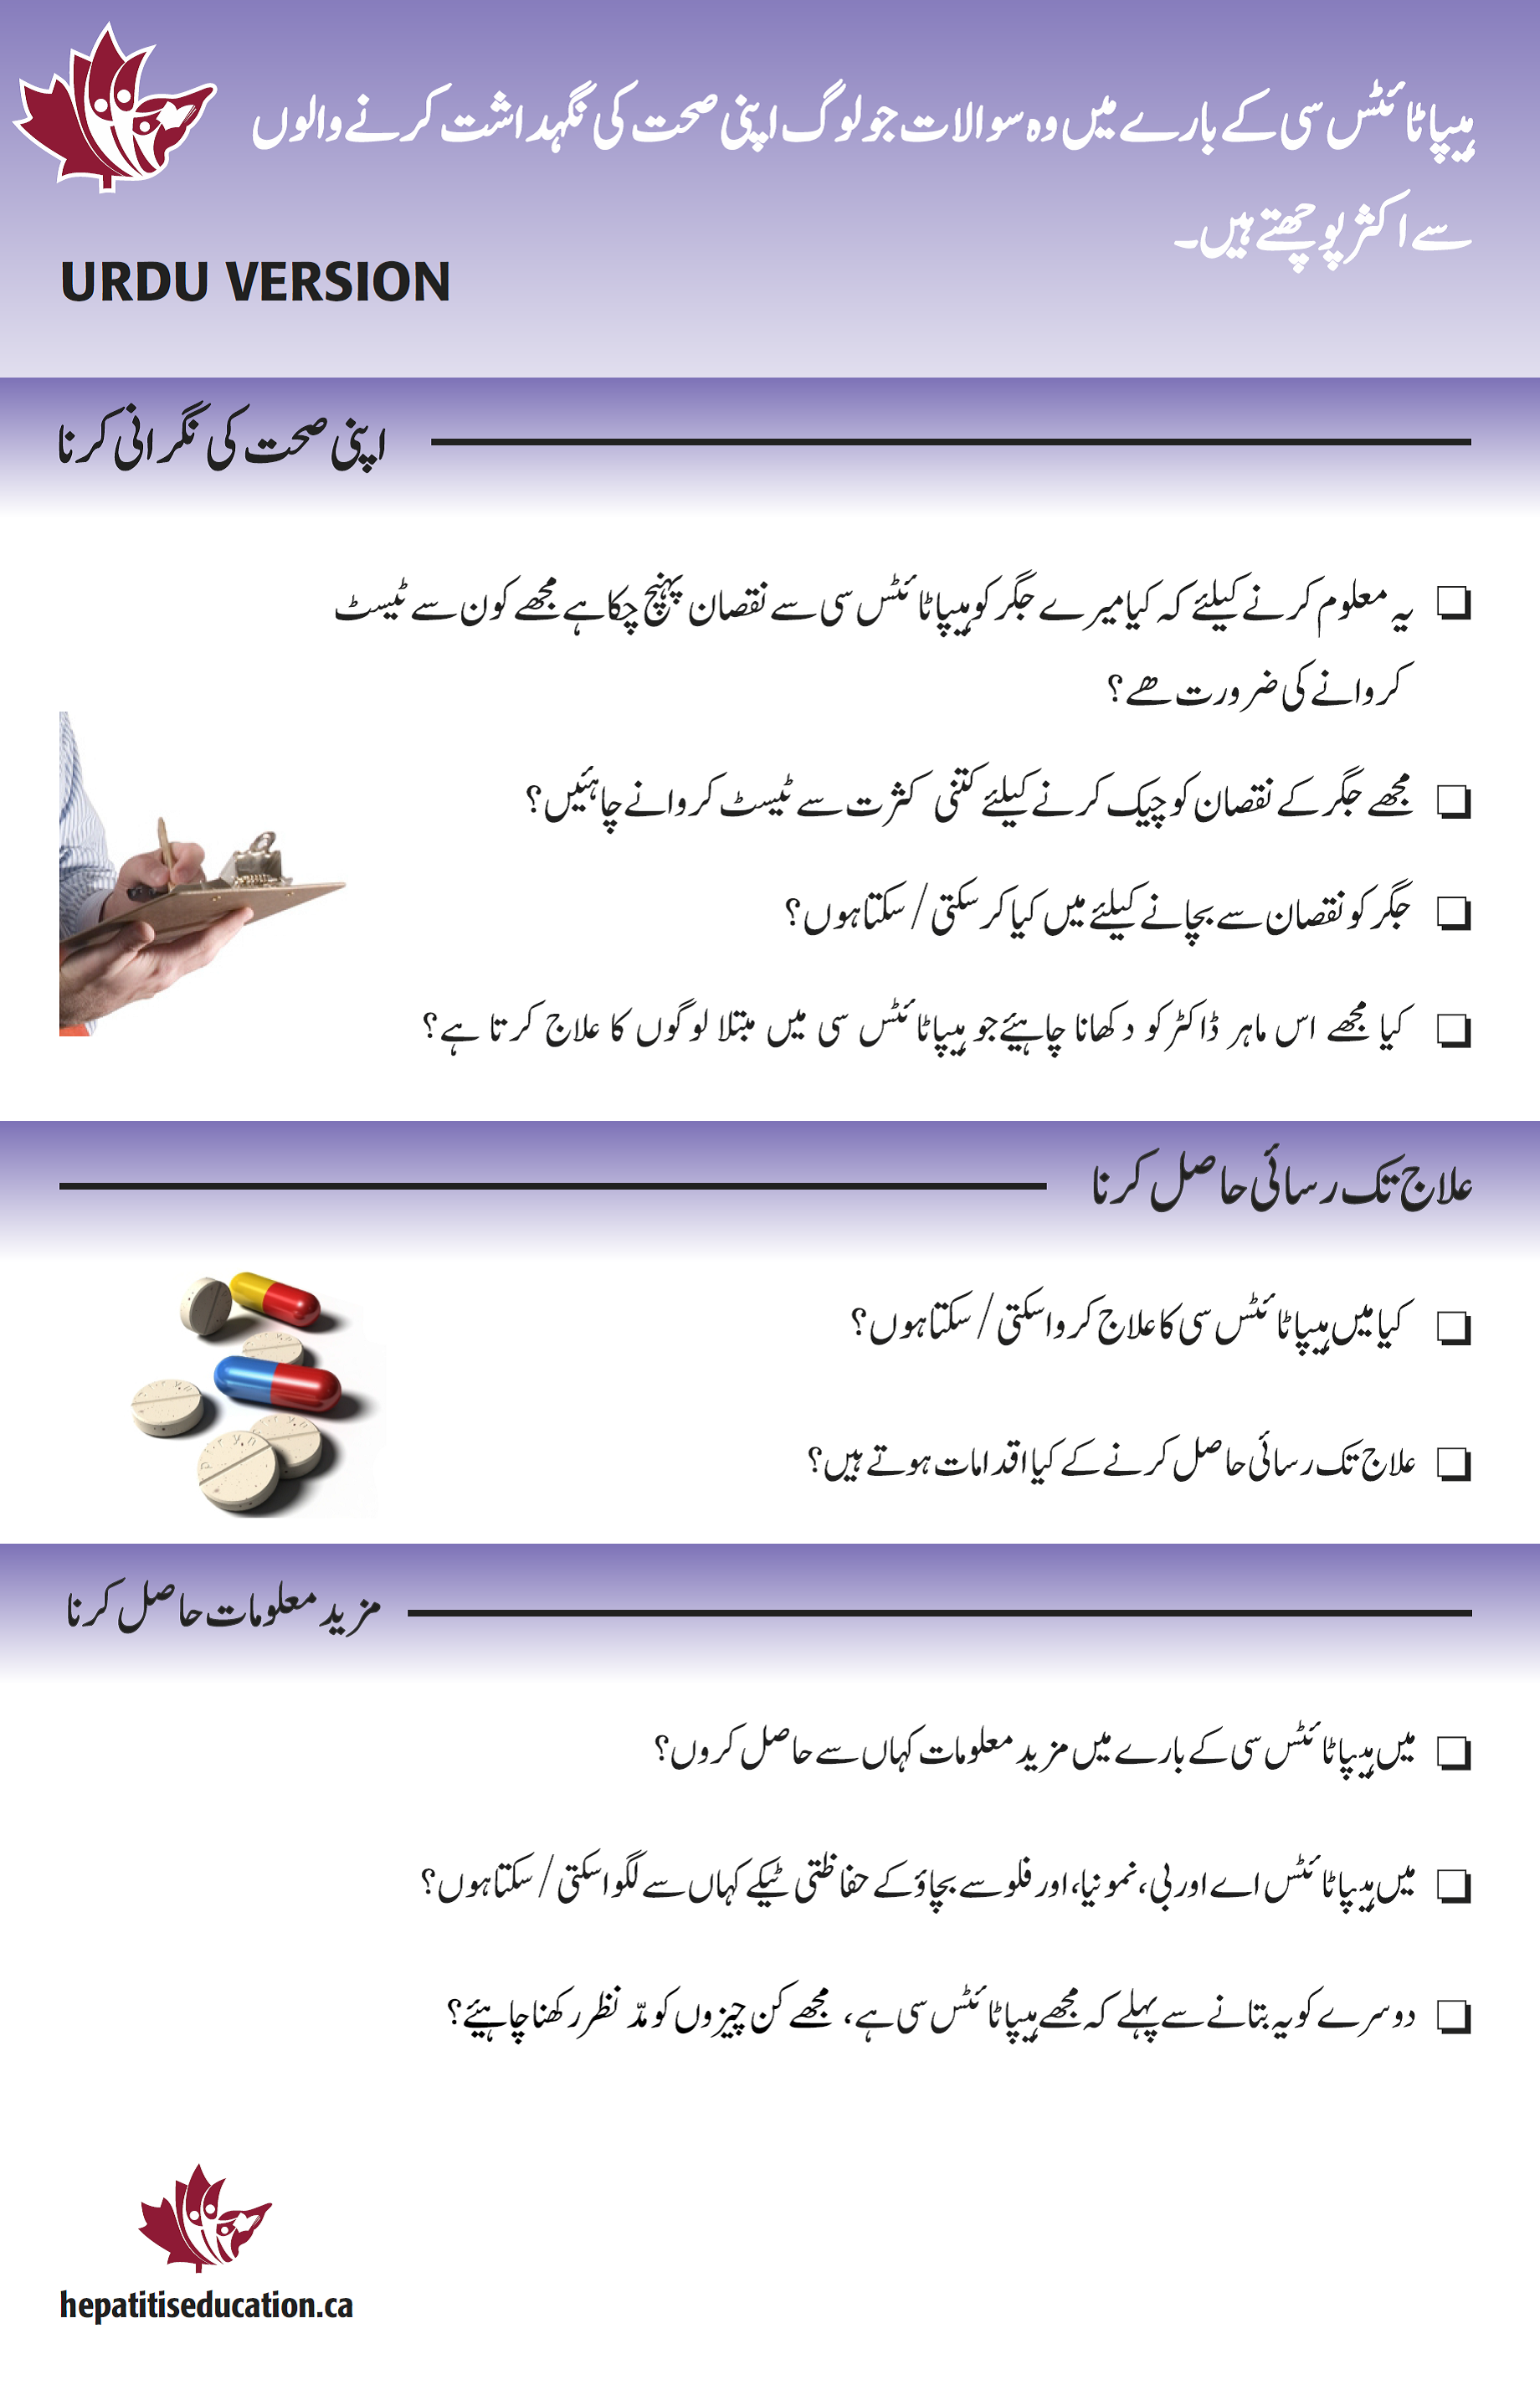 Question list Urdu3 Sept 16 2015